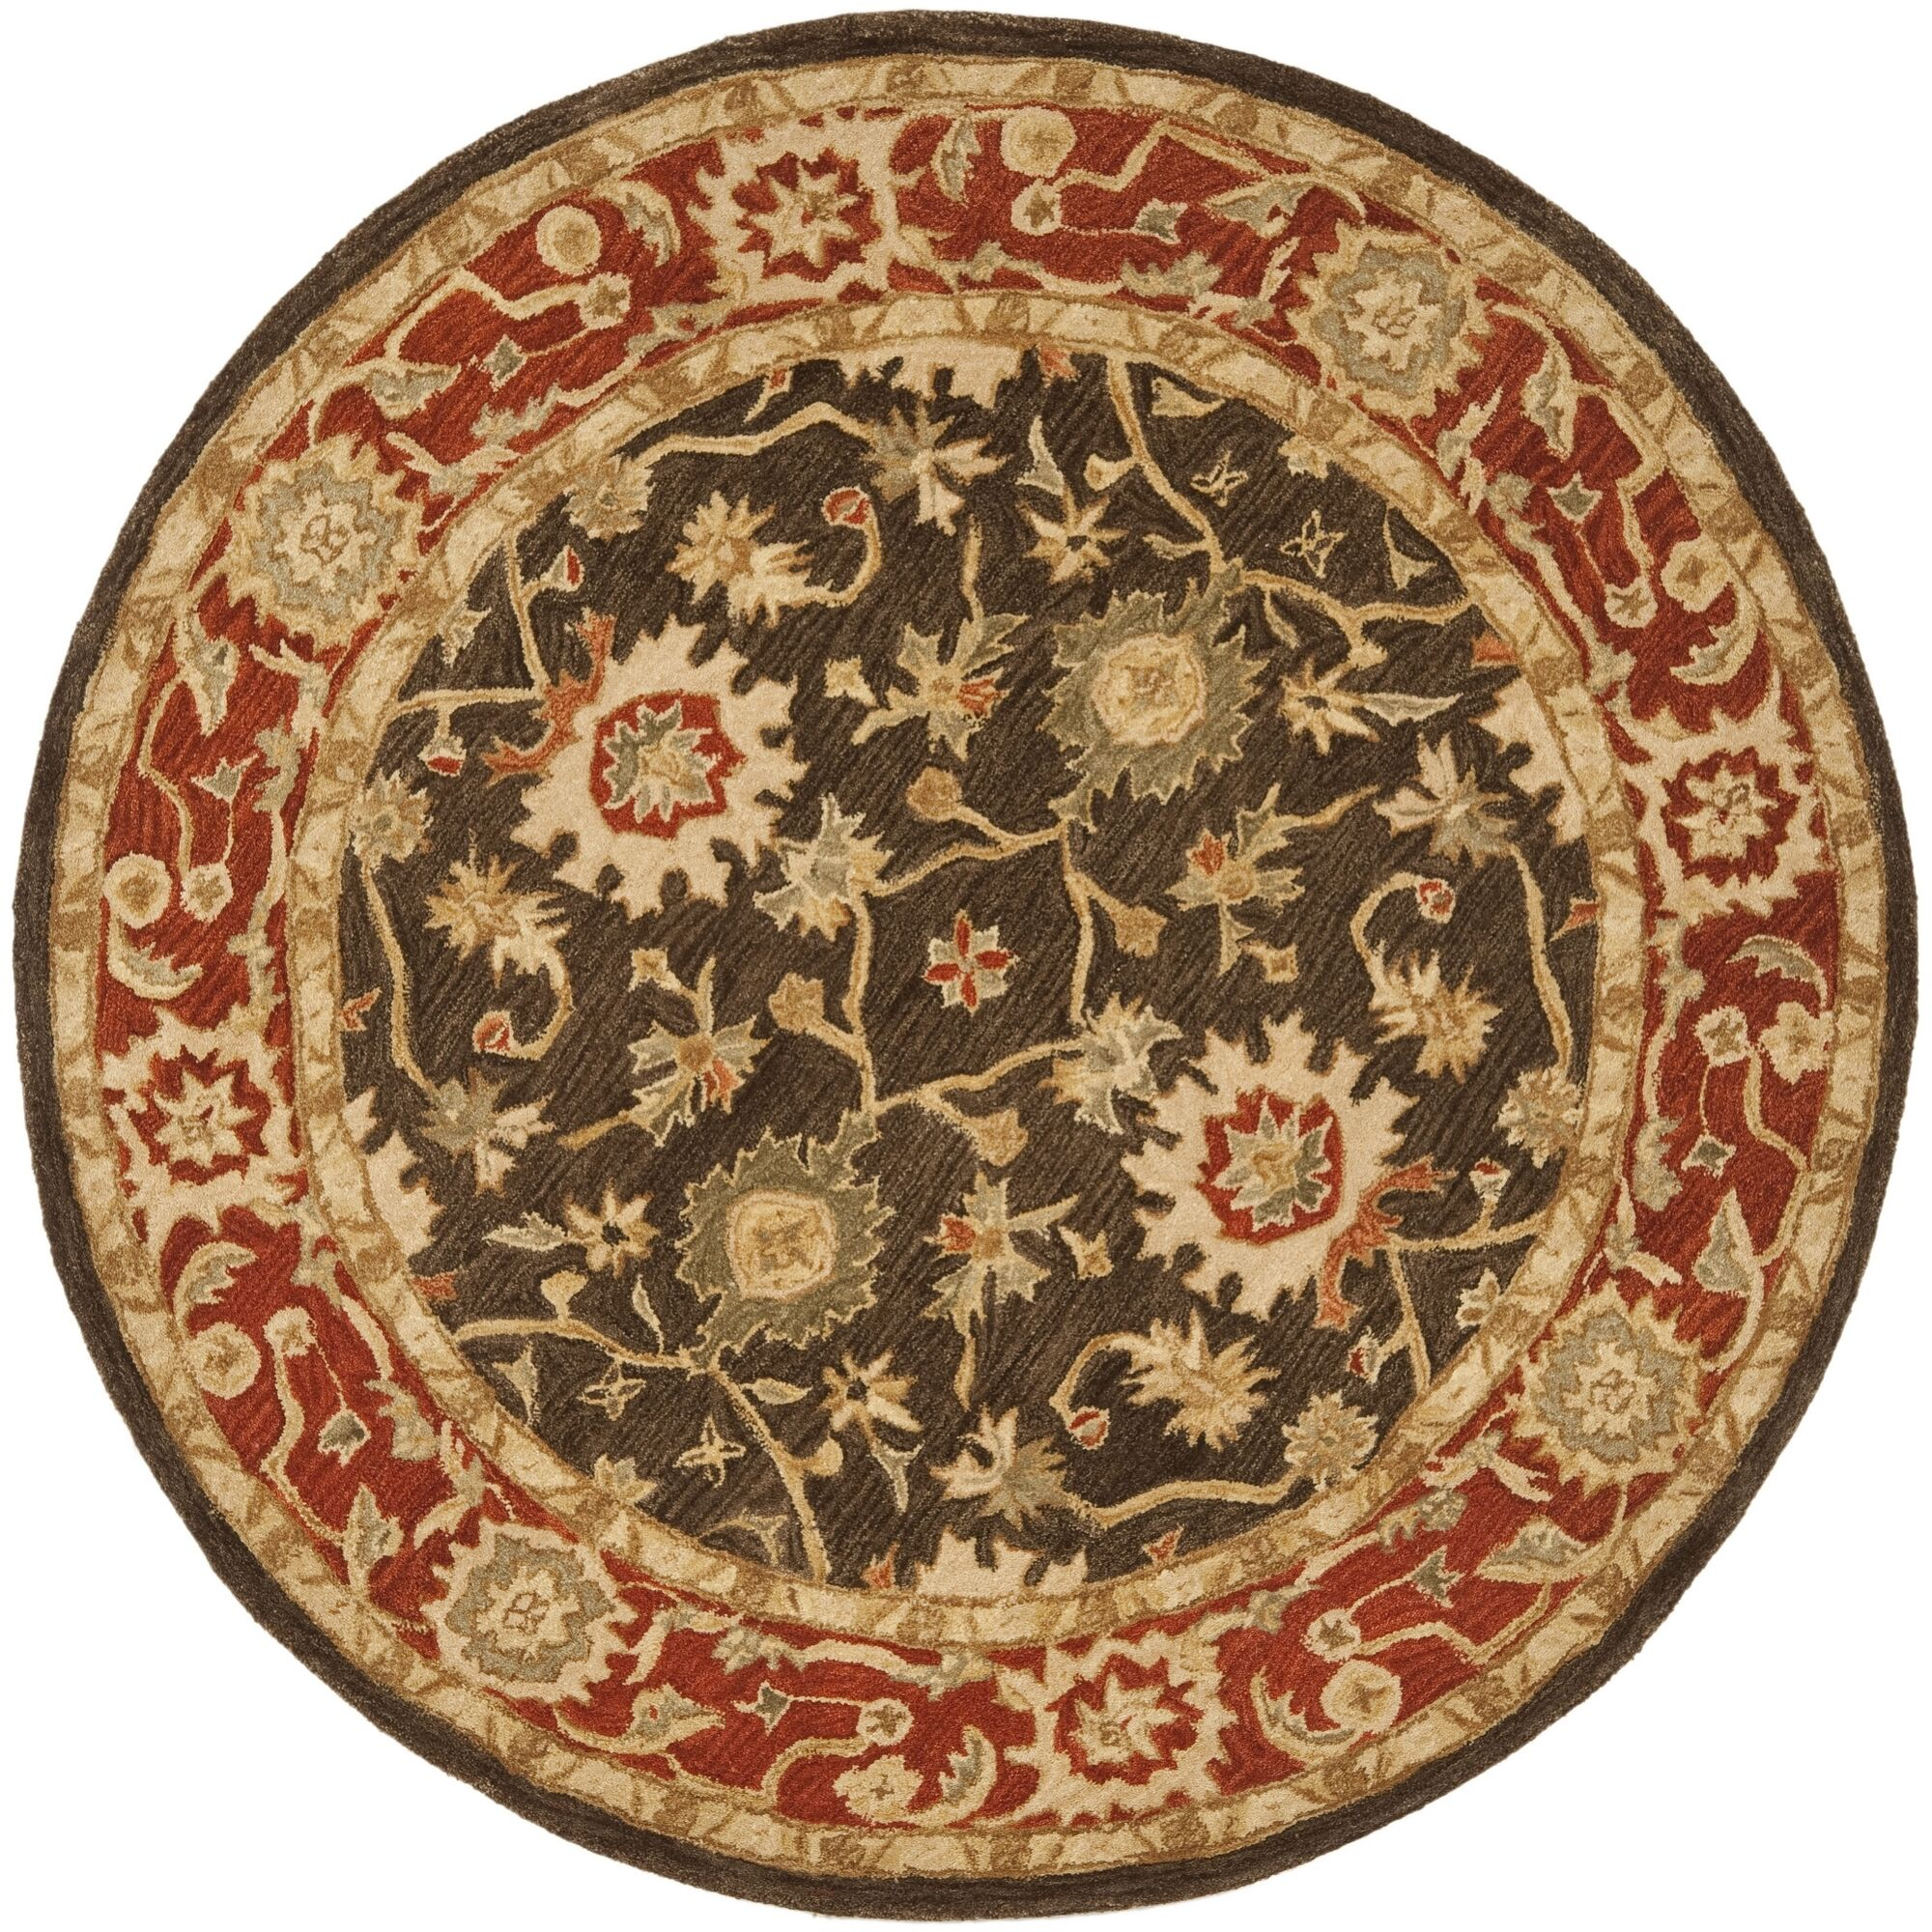 Thao Hand-Woven Wool Olive/Rust Area Rug Rug Size: Round 4'